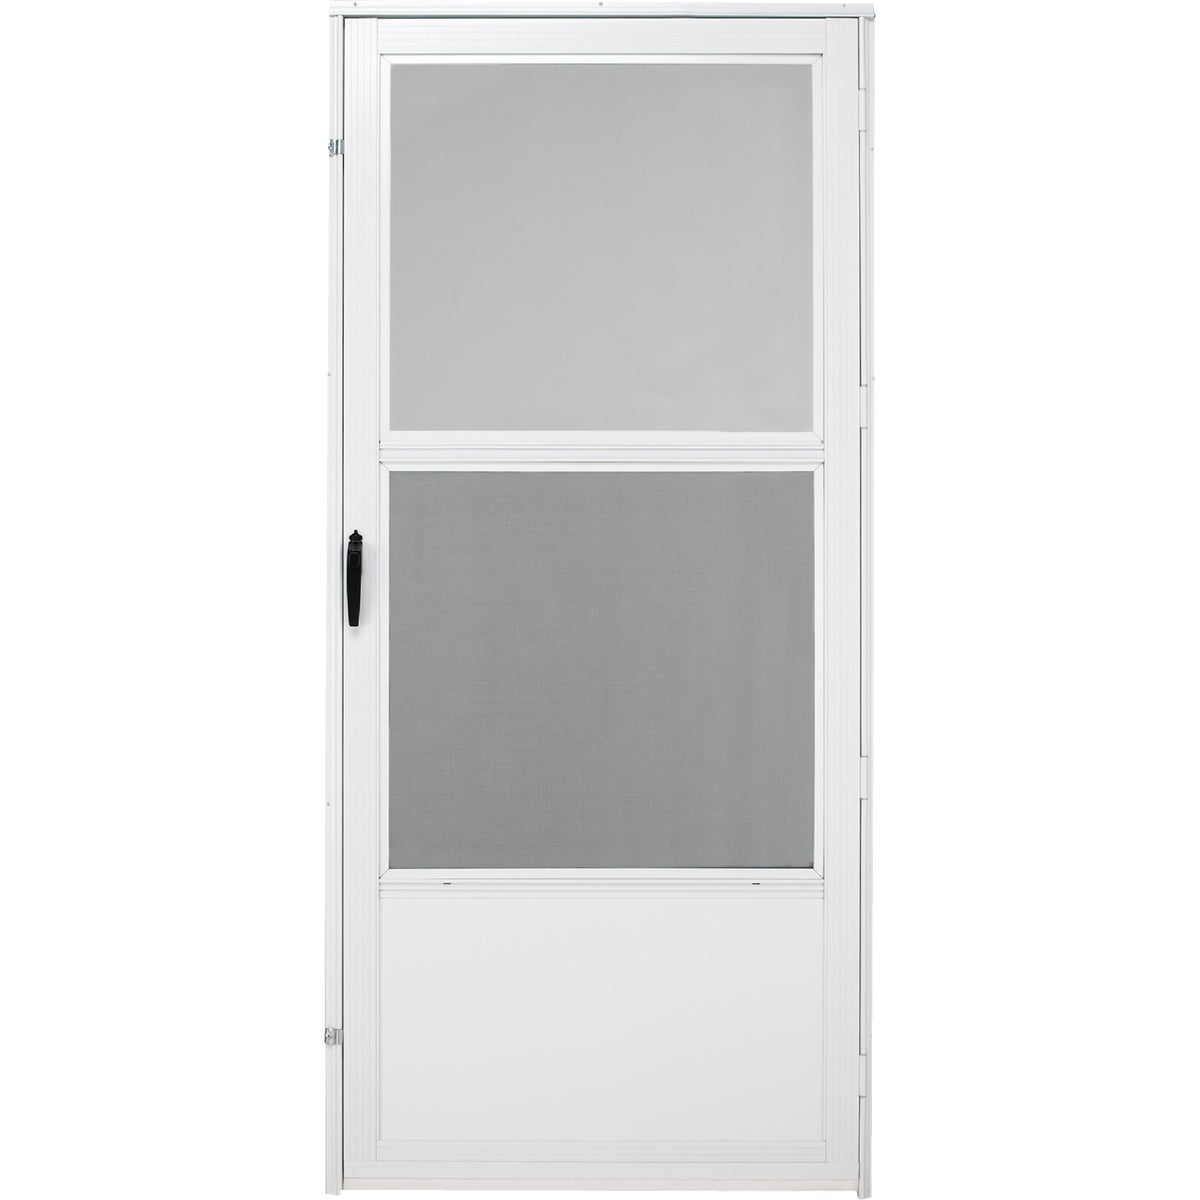 266 2868 RH WHT DOOR - F06080 by Croft Llc